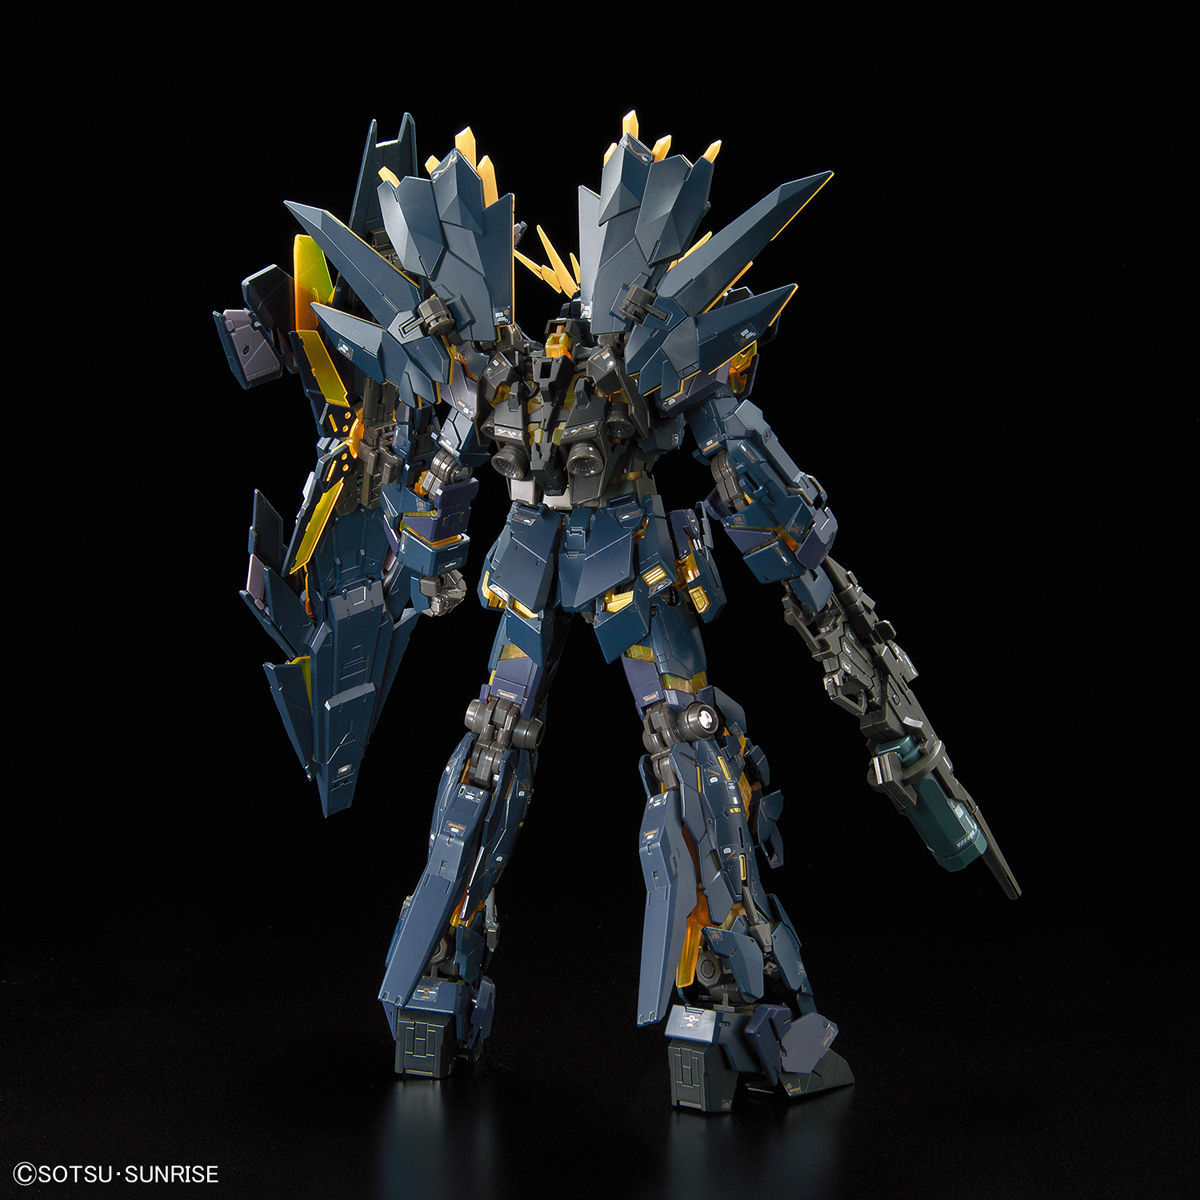 RG 1/144 Unicorn Gundam 02 Banshee Norn - model Kit image